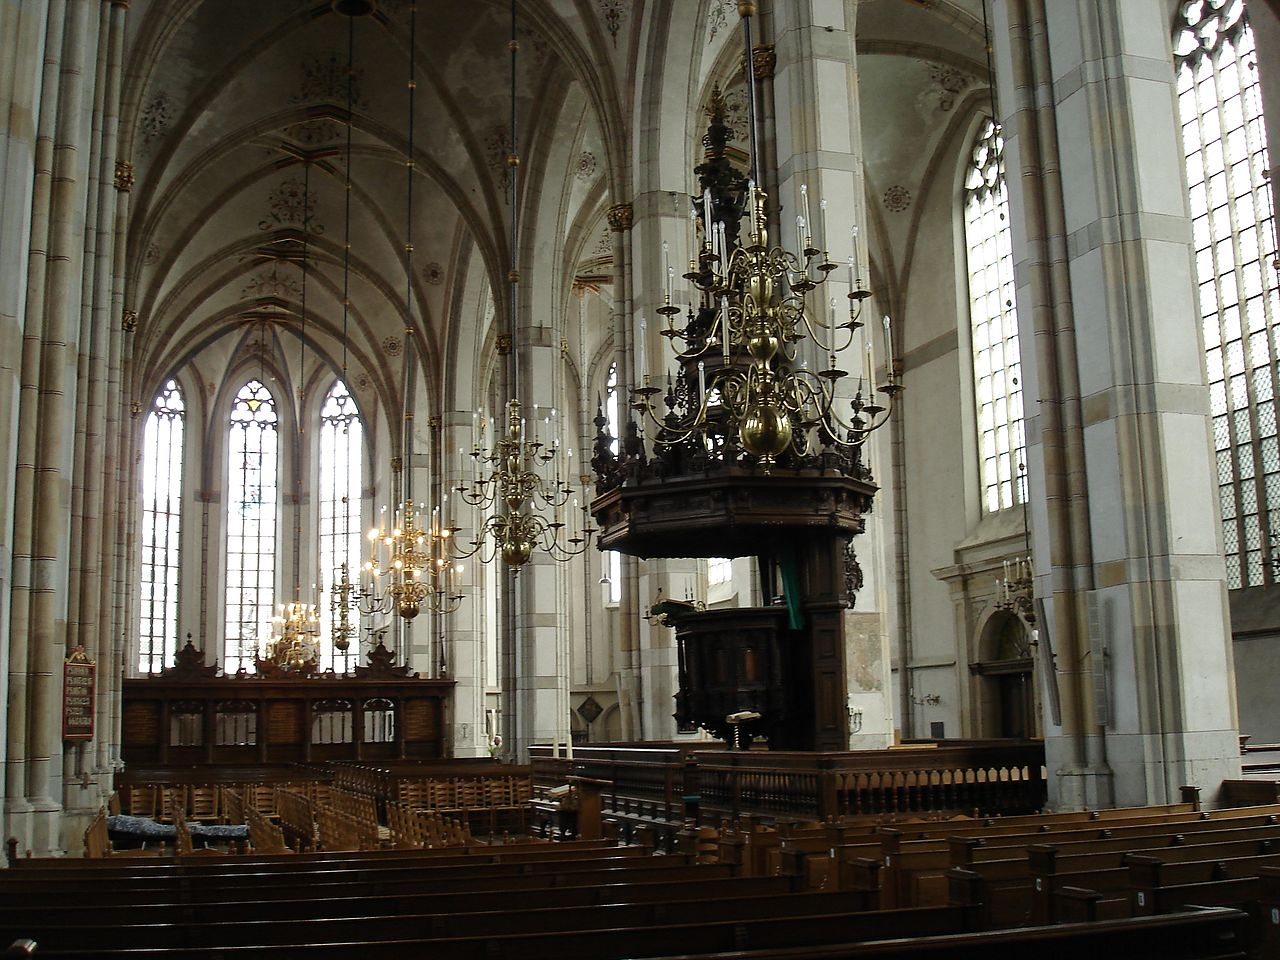 https://upload.wikimedia.org/wikipedia/commons/thumb/5/55/Zwolle_Sint_Michaelskerk_Interieur.jpg/1280px-Zwolle_Sint_Michaelskerk_Interieur.jpg